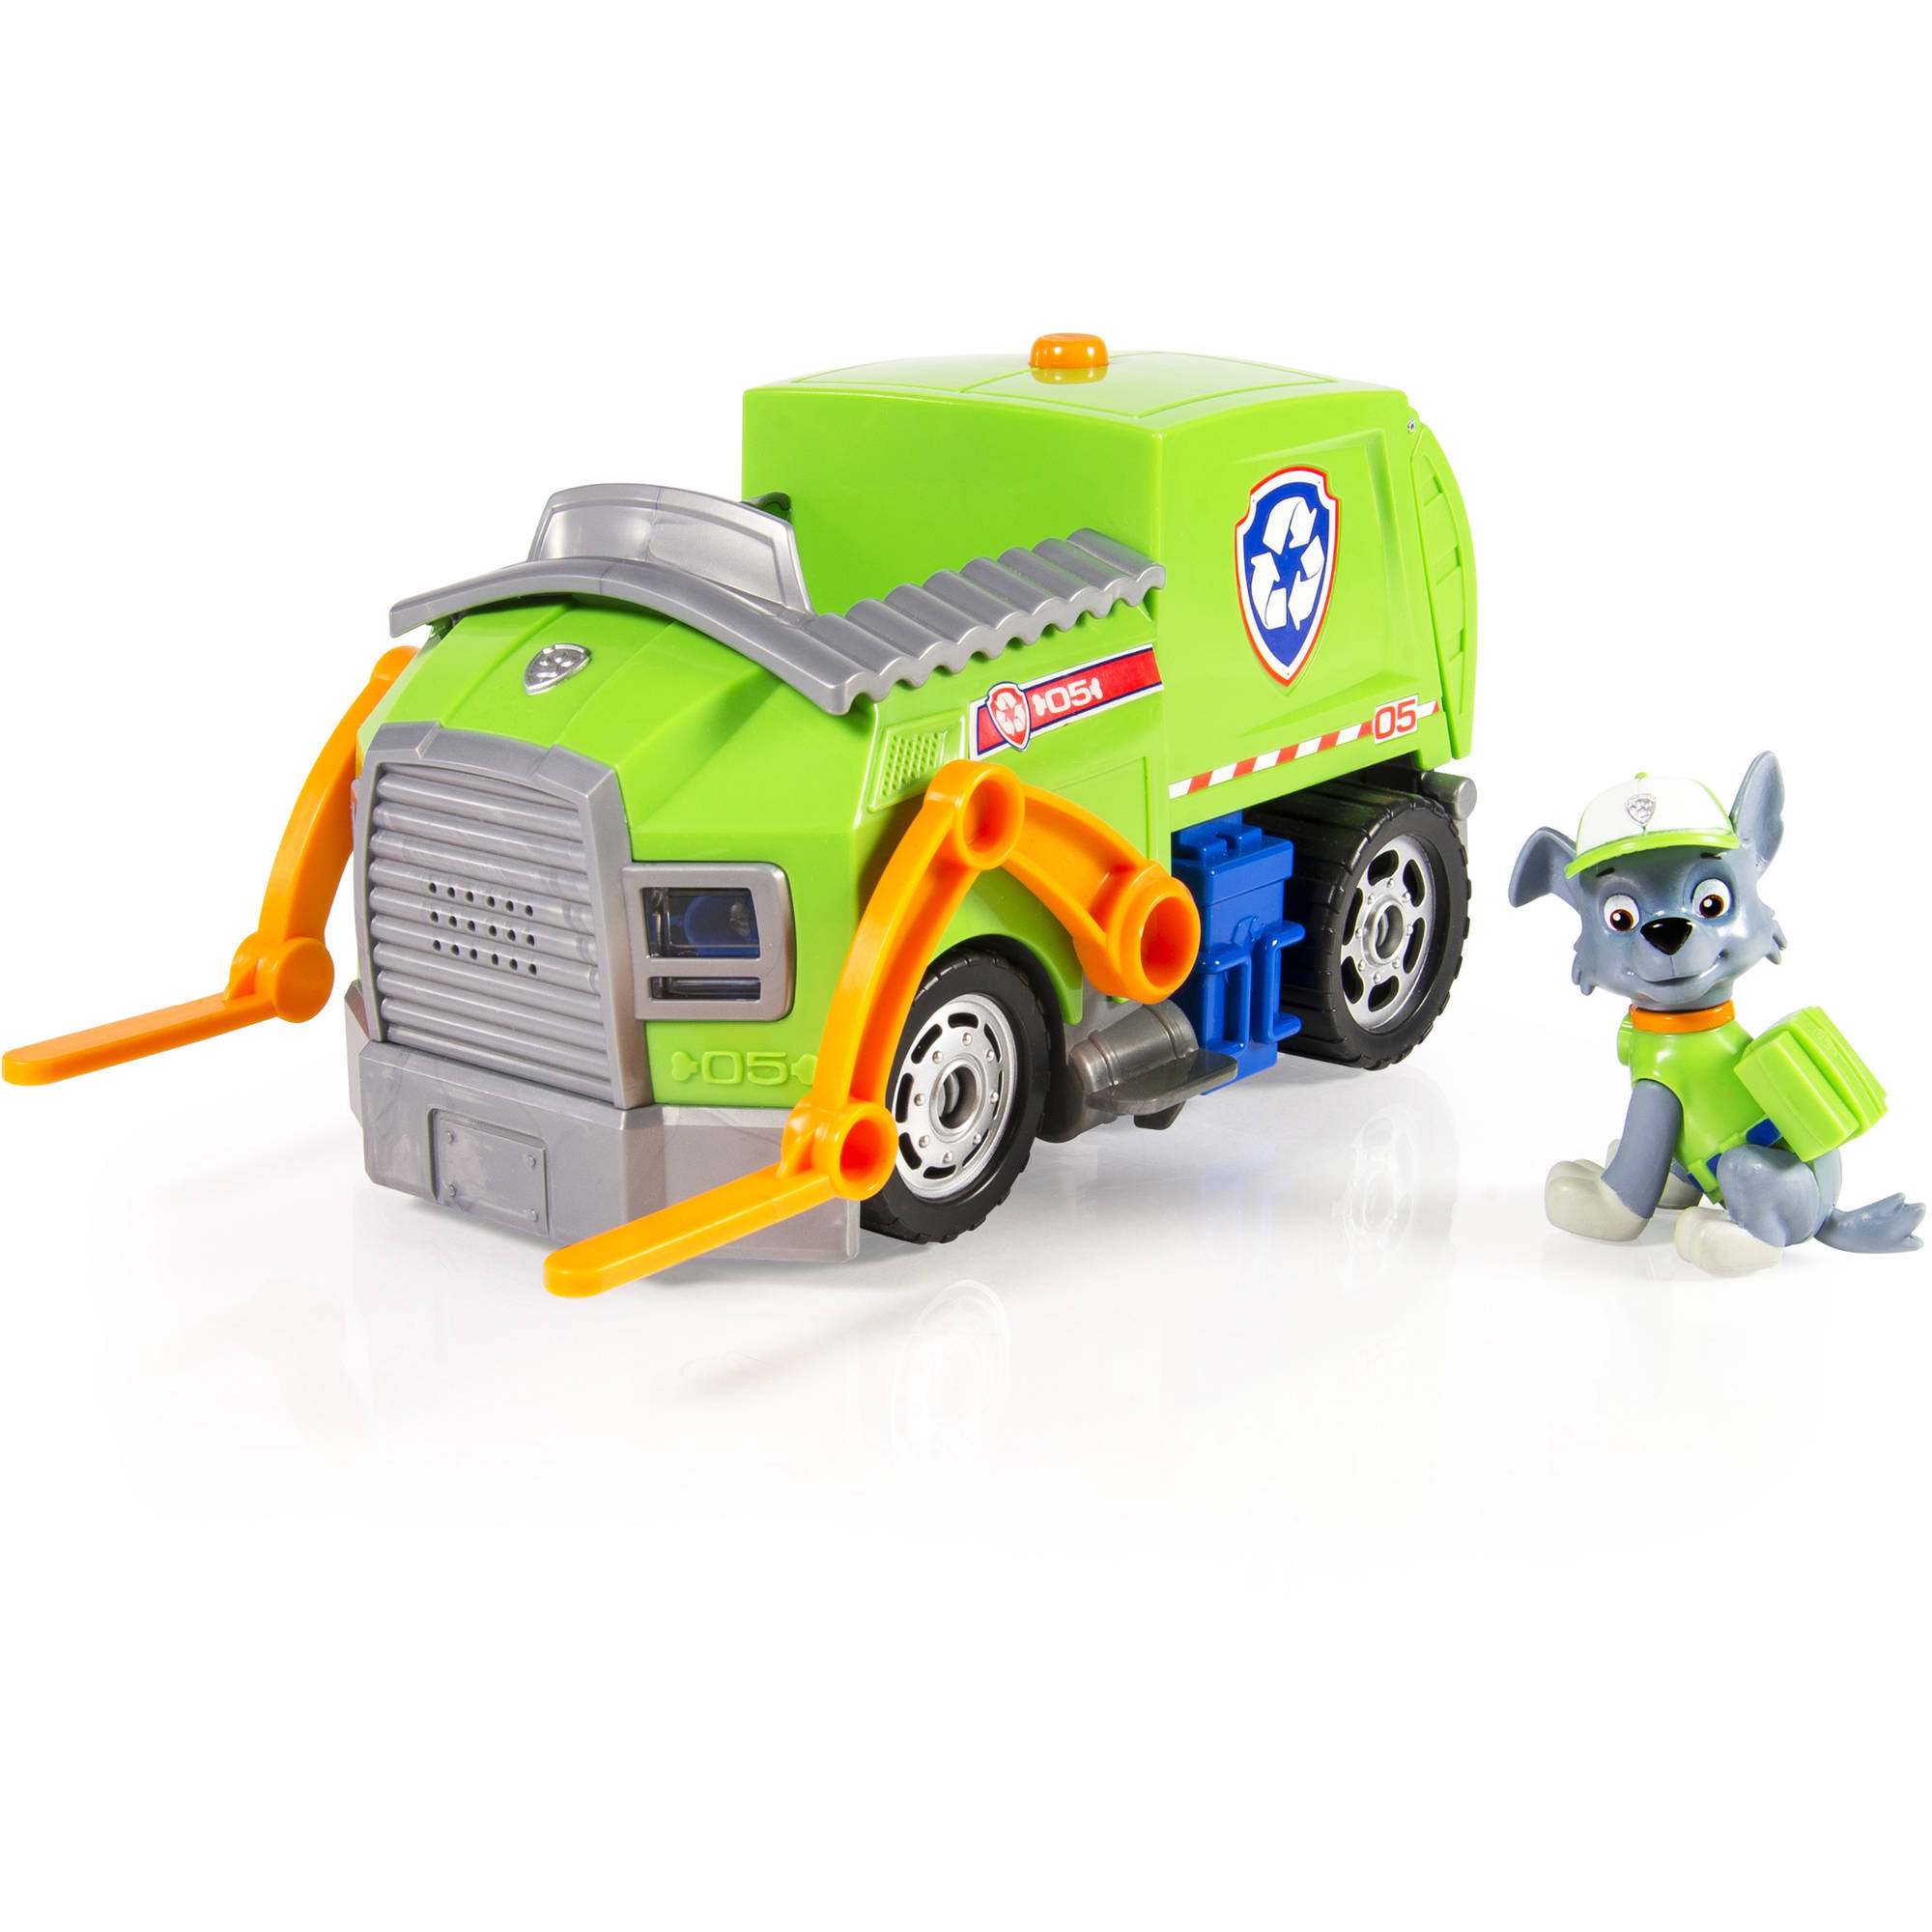 Fisher Price Paw Patrol Rocky's Lights and Sounds Recycling Truck by Paw Patrol